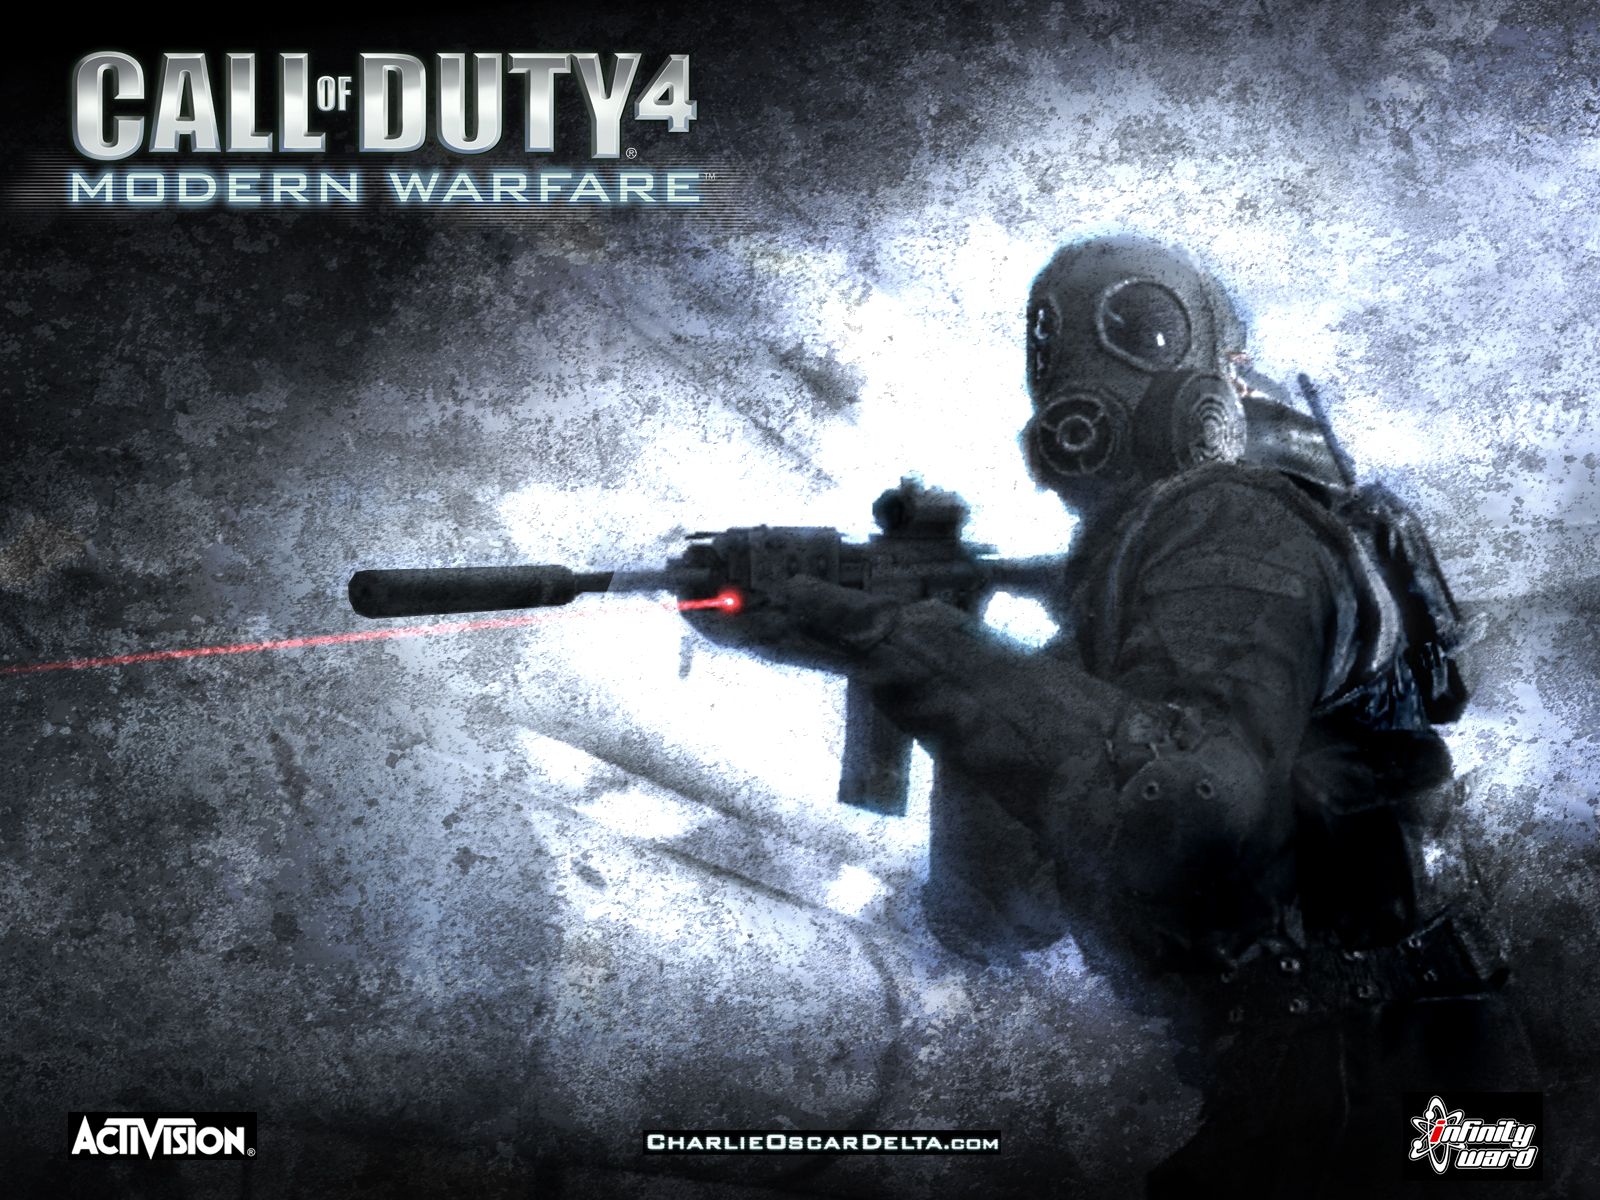 Call of Duty 4 modern warfare 1 free download for pc